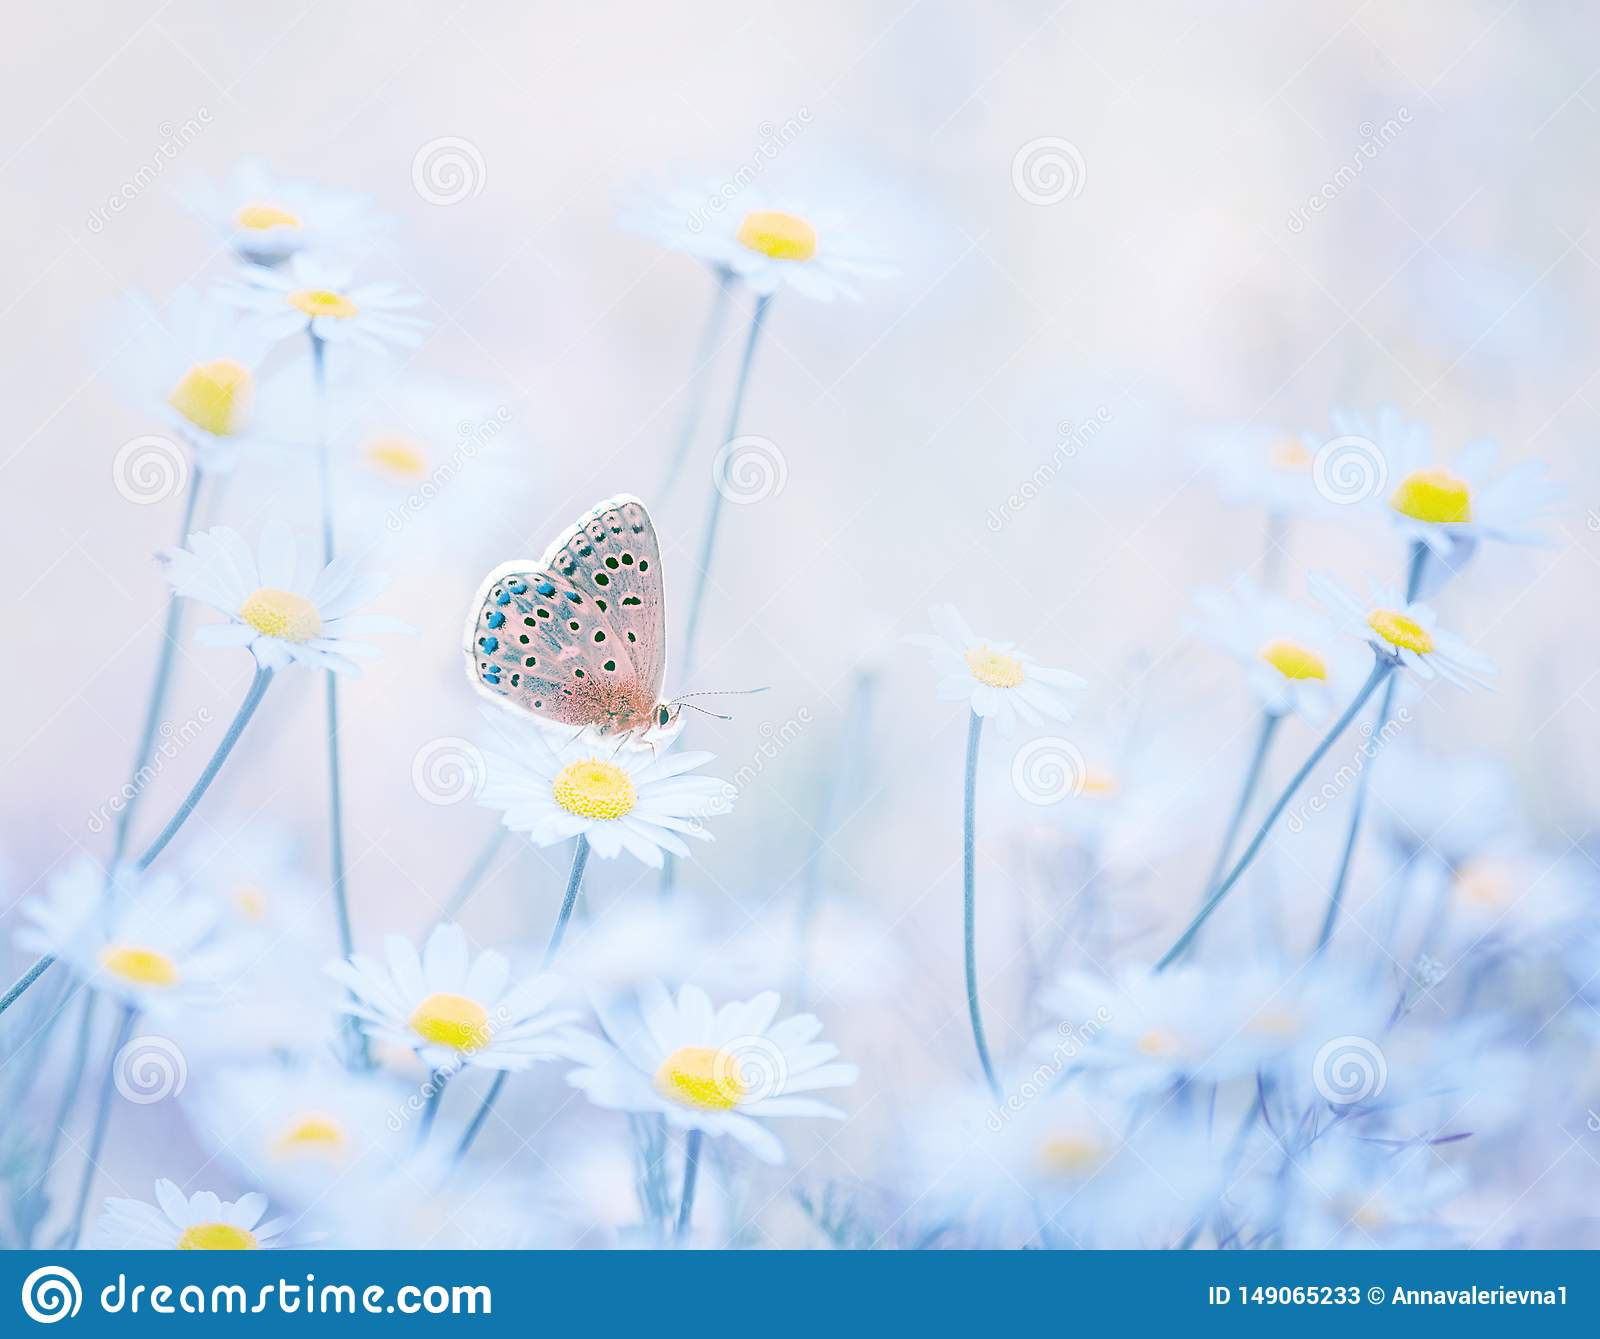 Little blue butterfly bluehead on daisy flowers in a meadow. Artistic tender photo.